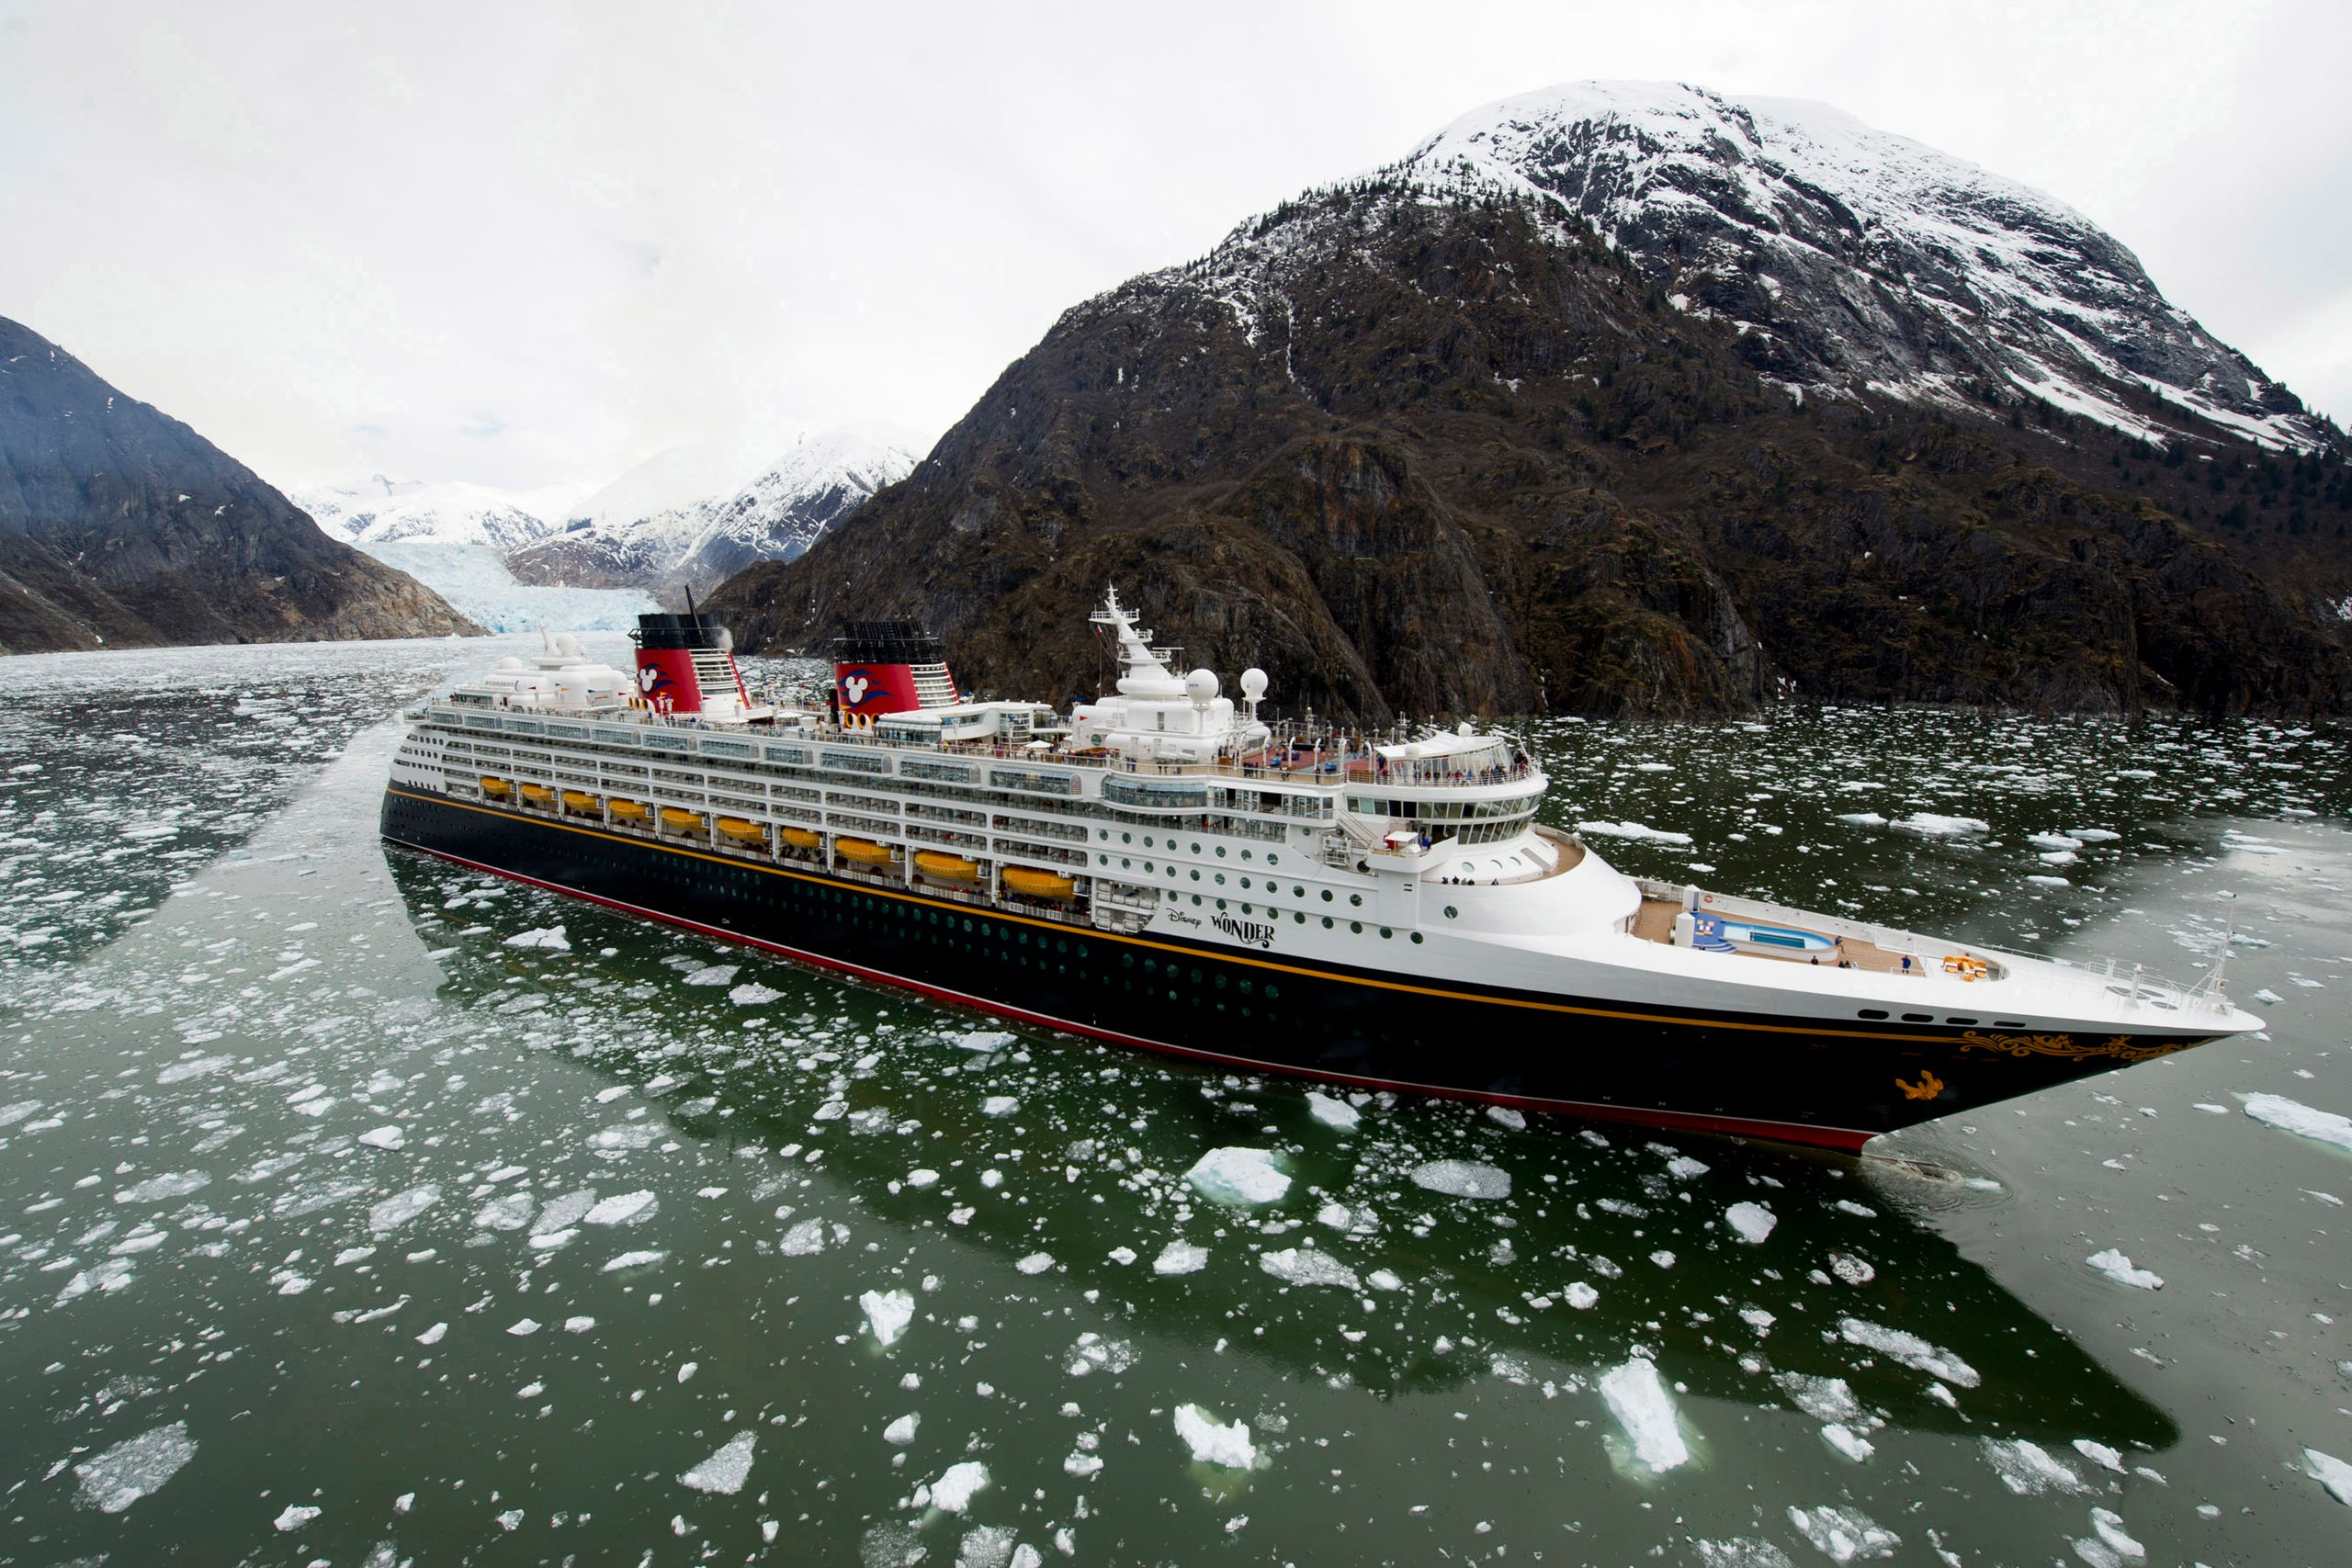 Disney Alaska Cruise 2020.Disney Cruise Line Announces 2020 European Ports Of Call